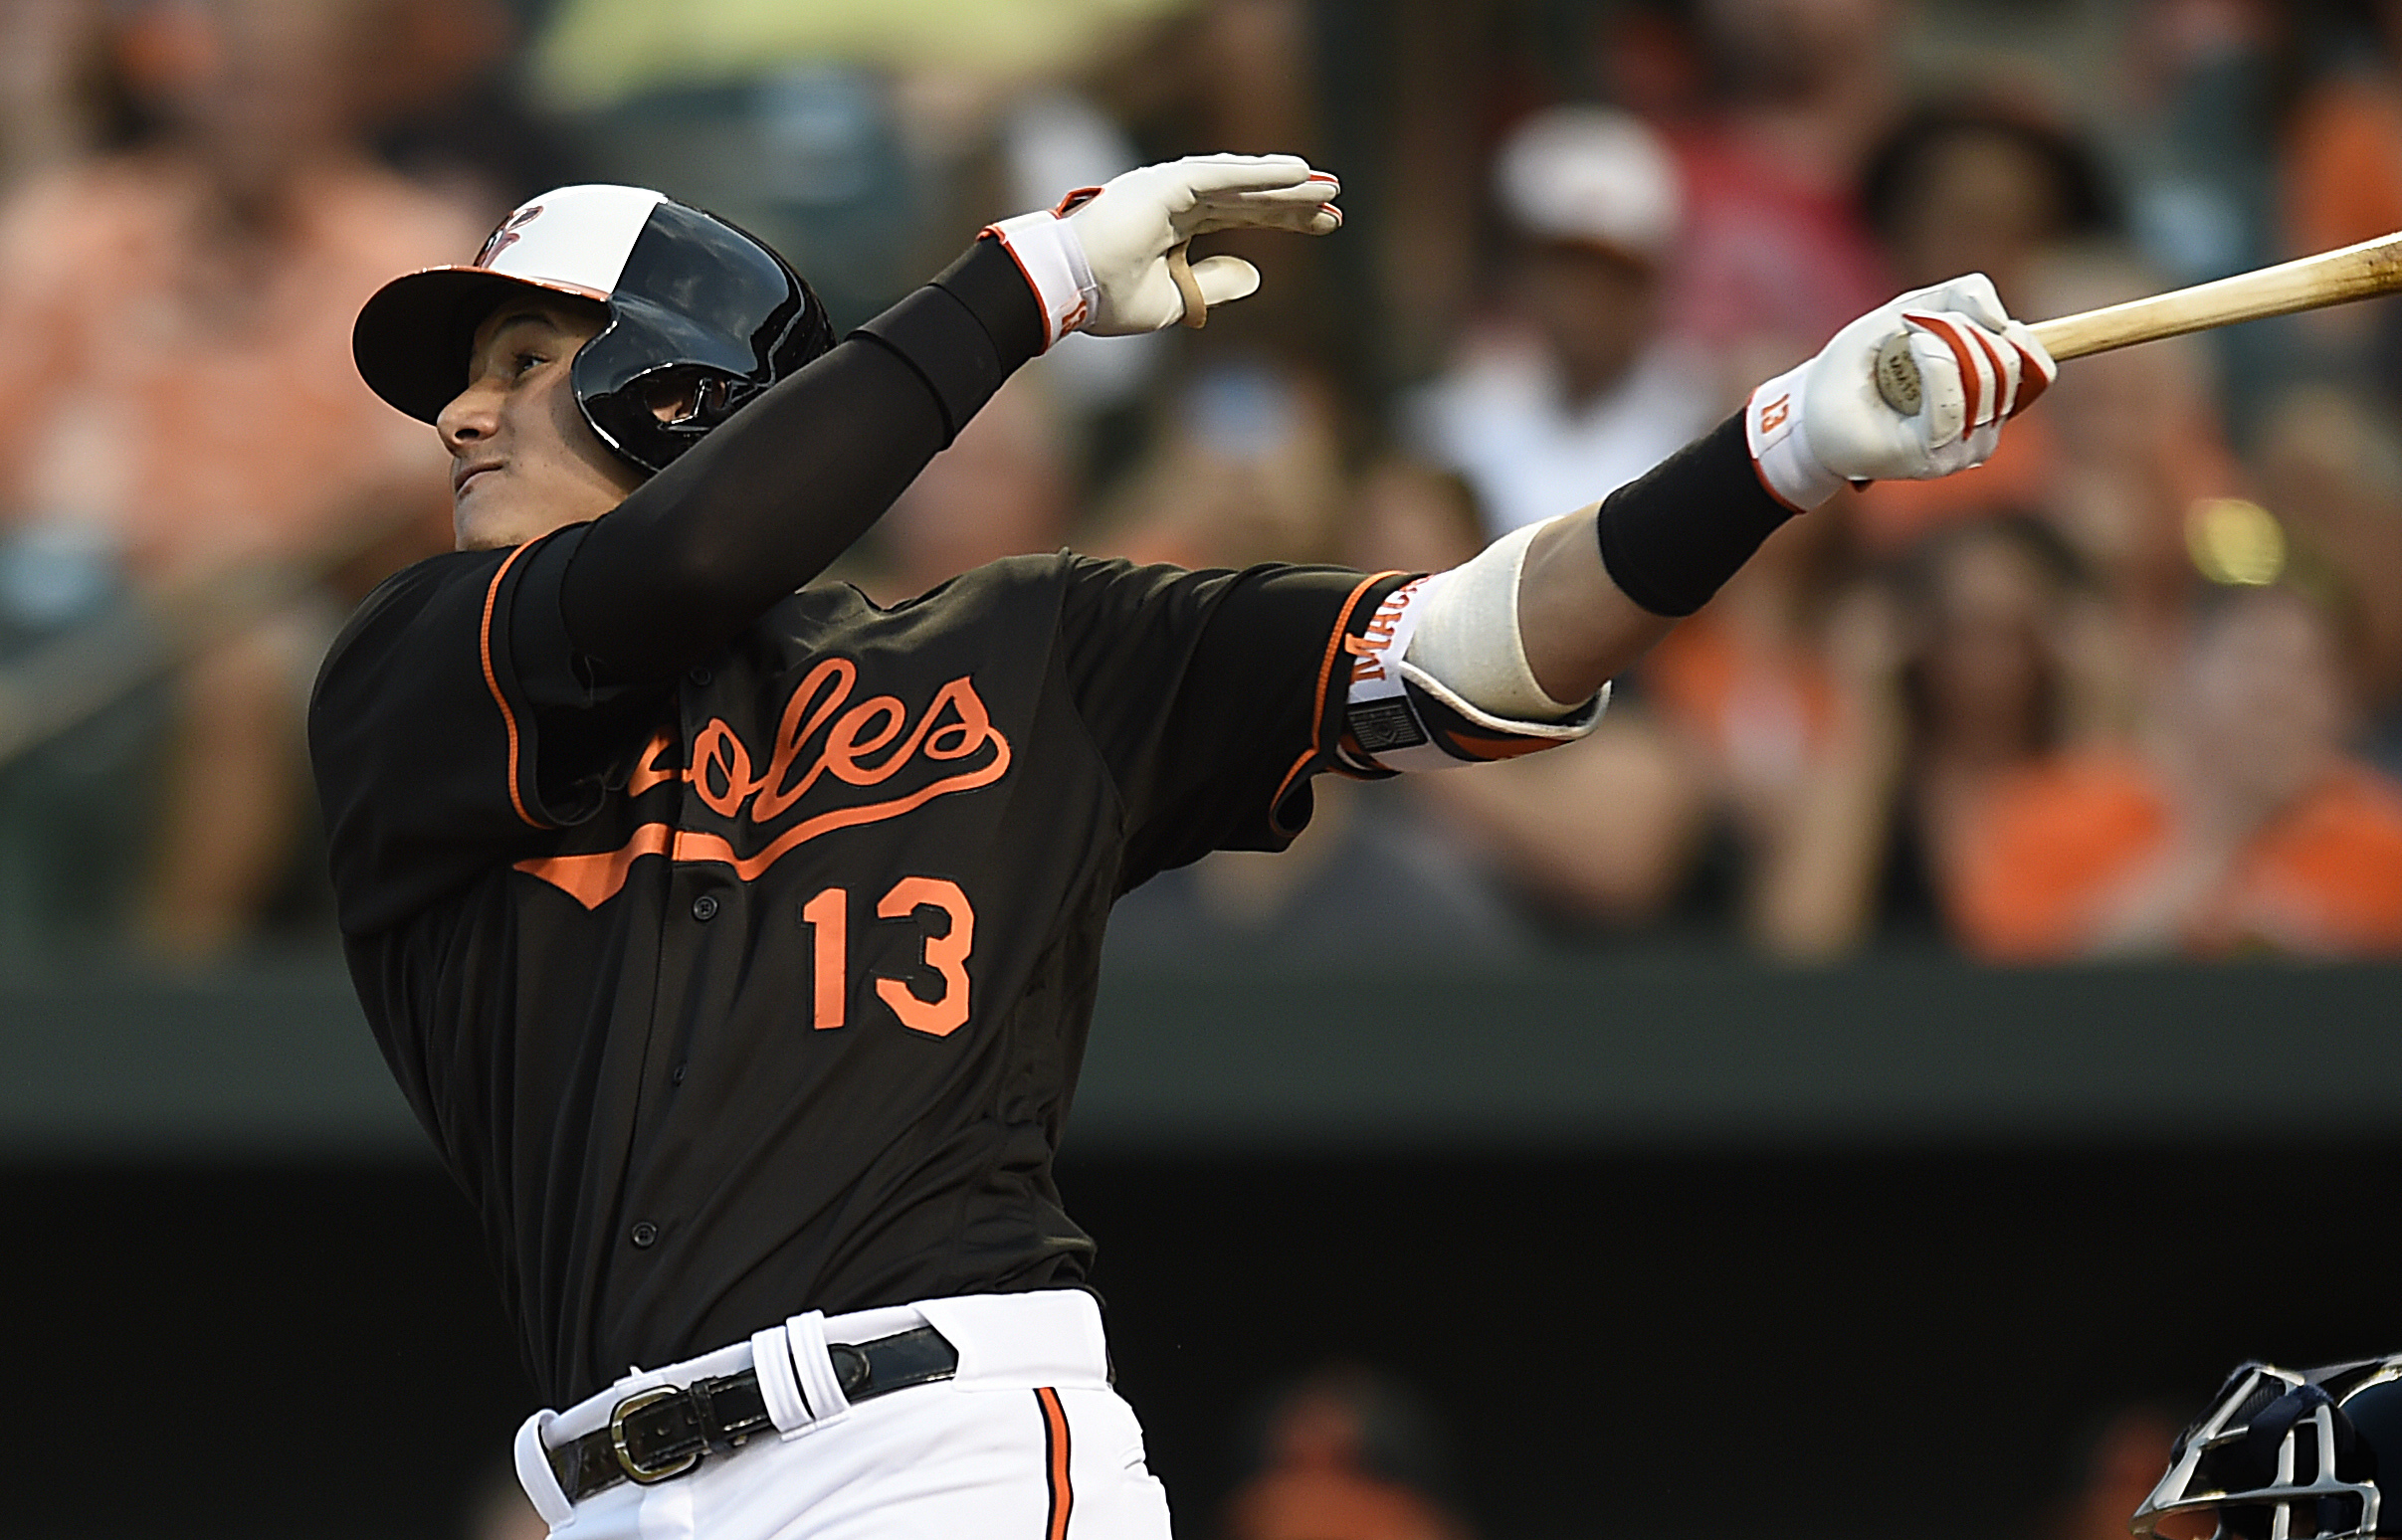 Baltimore Orioles' Manny Machado follows through on a solo home run against the Cleveland Indians in the third inning of a baseball game, Friday, July 22, 2016, in Baltimore. (AP Photo/Gail Burton)